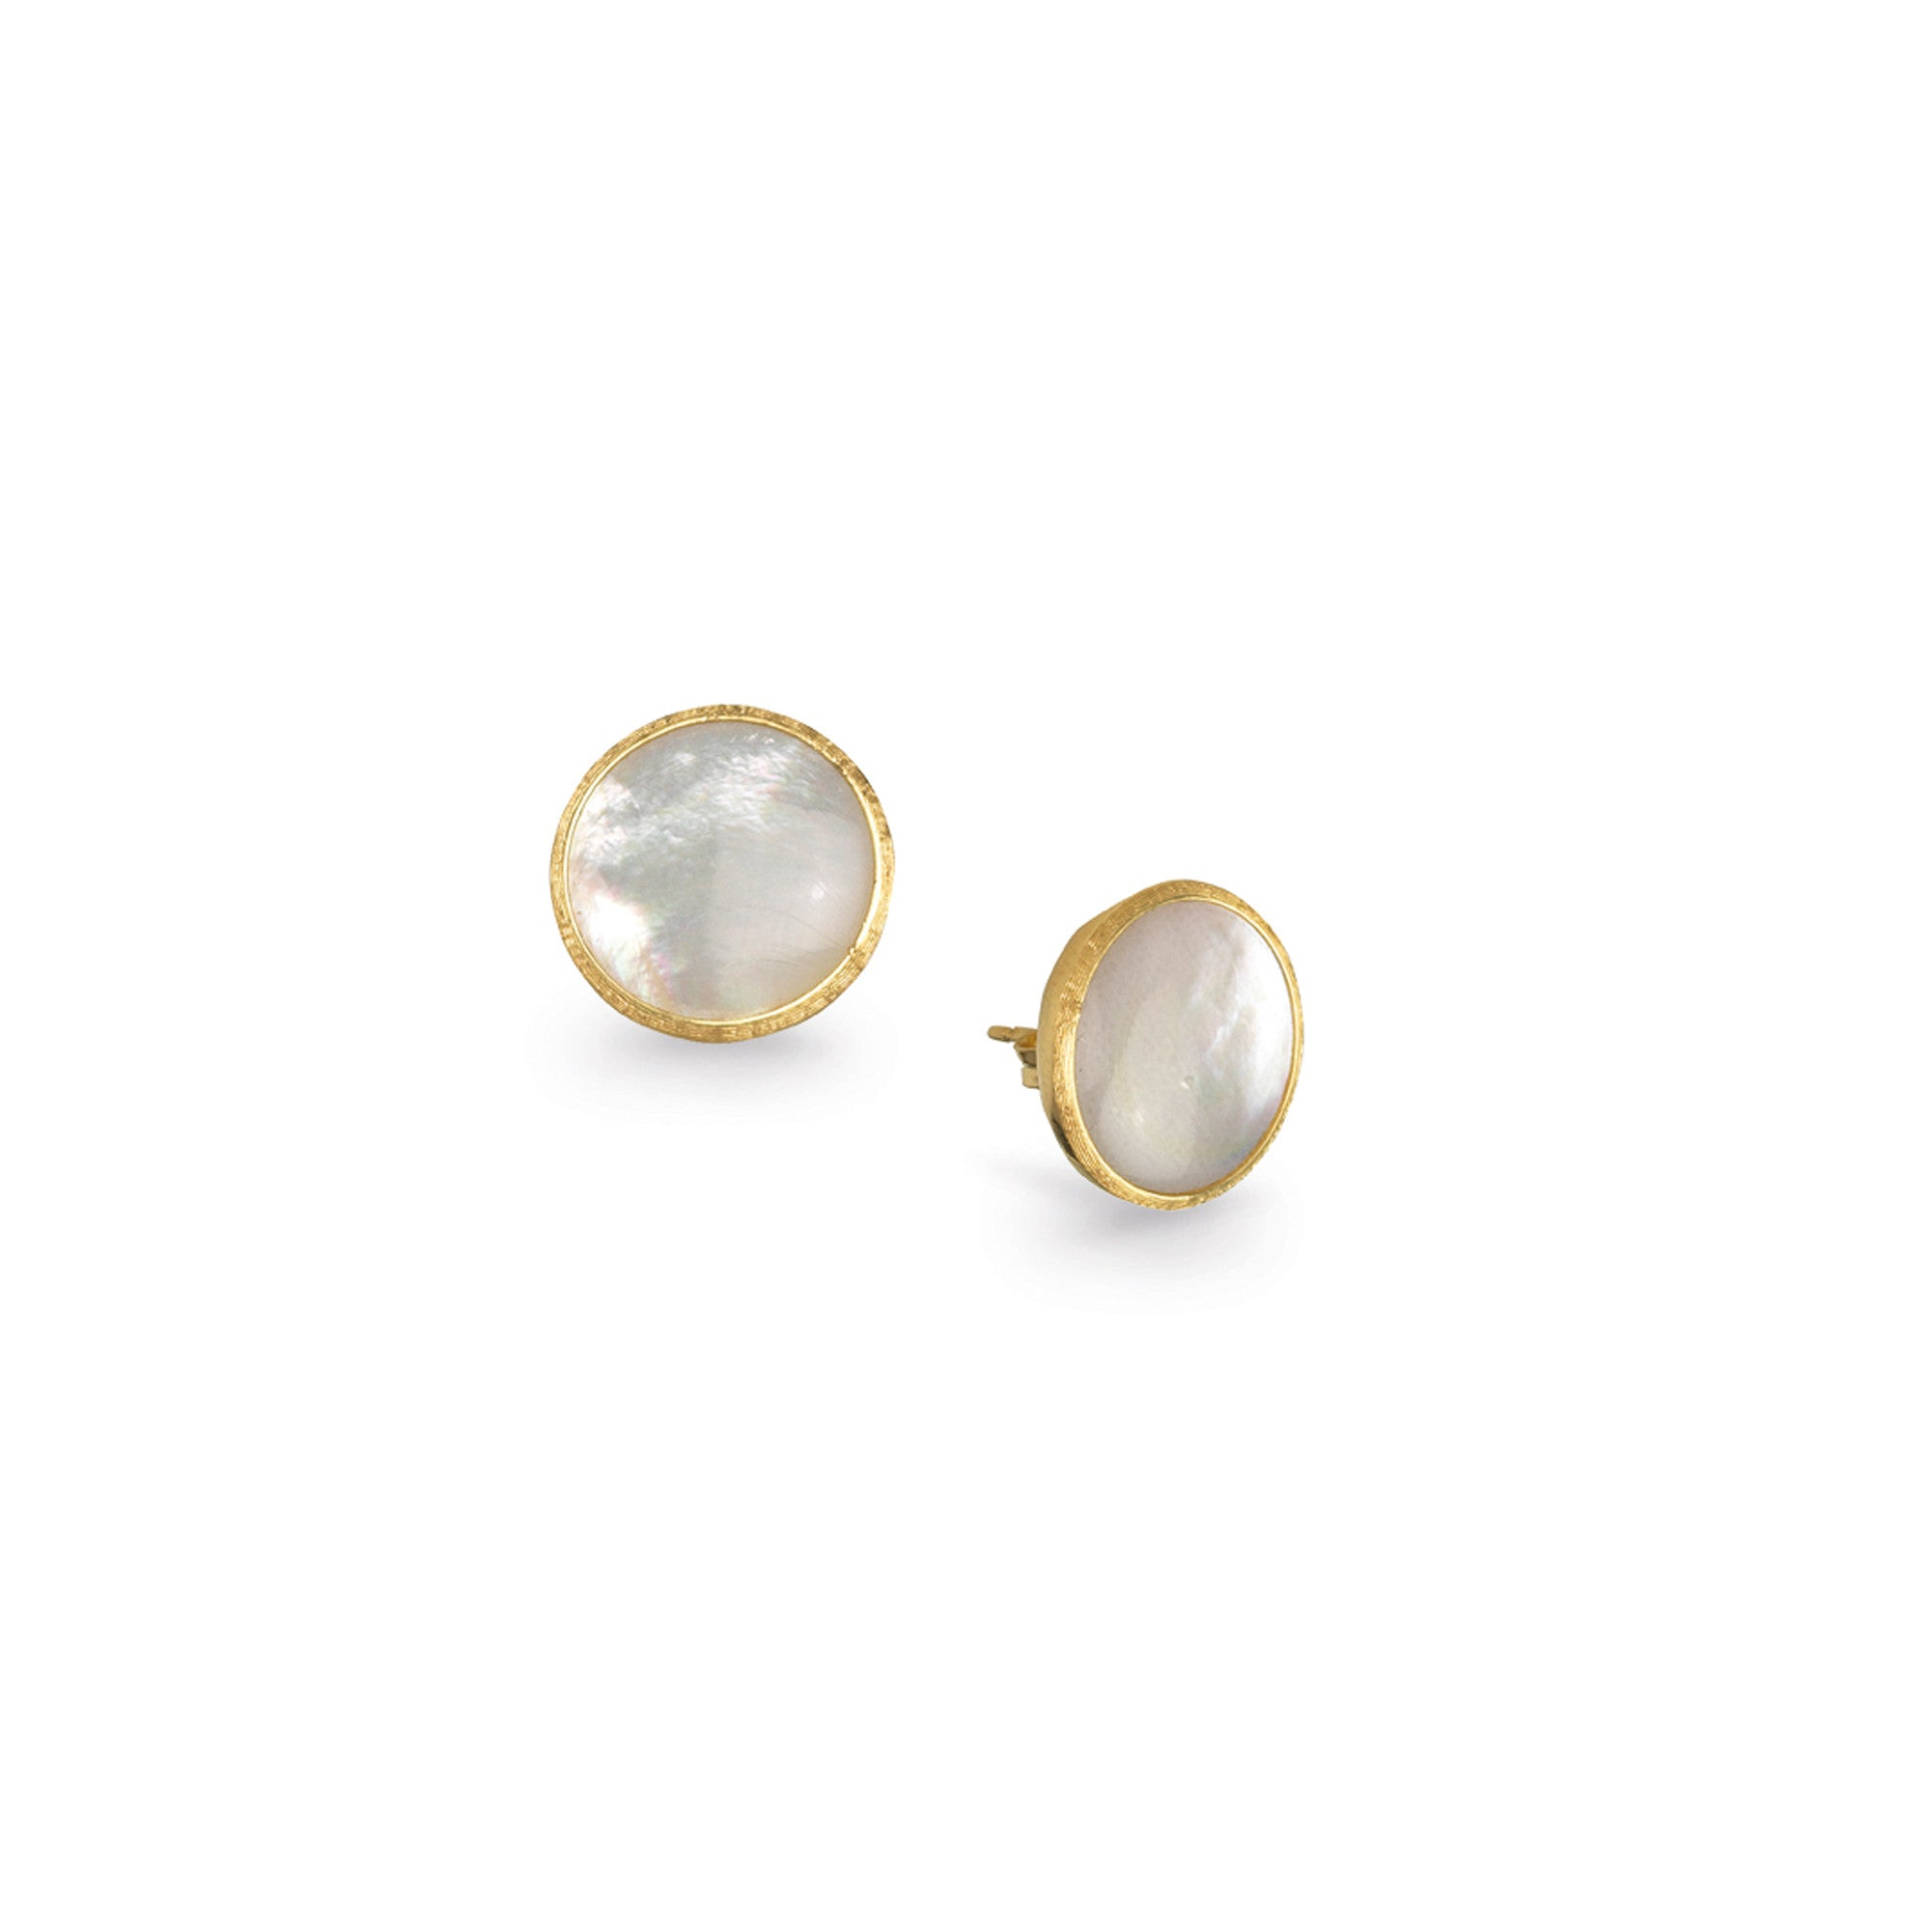 18k Yellow Gold Mother Of Pearl Button Earrings Little